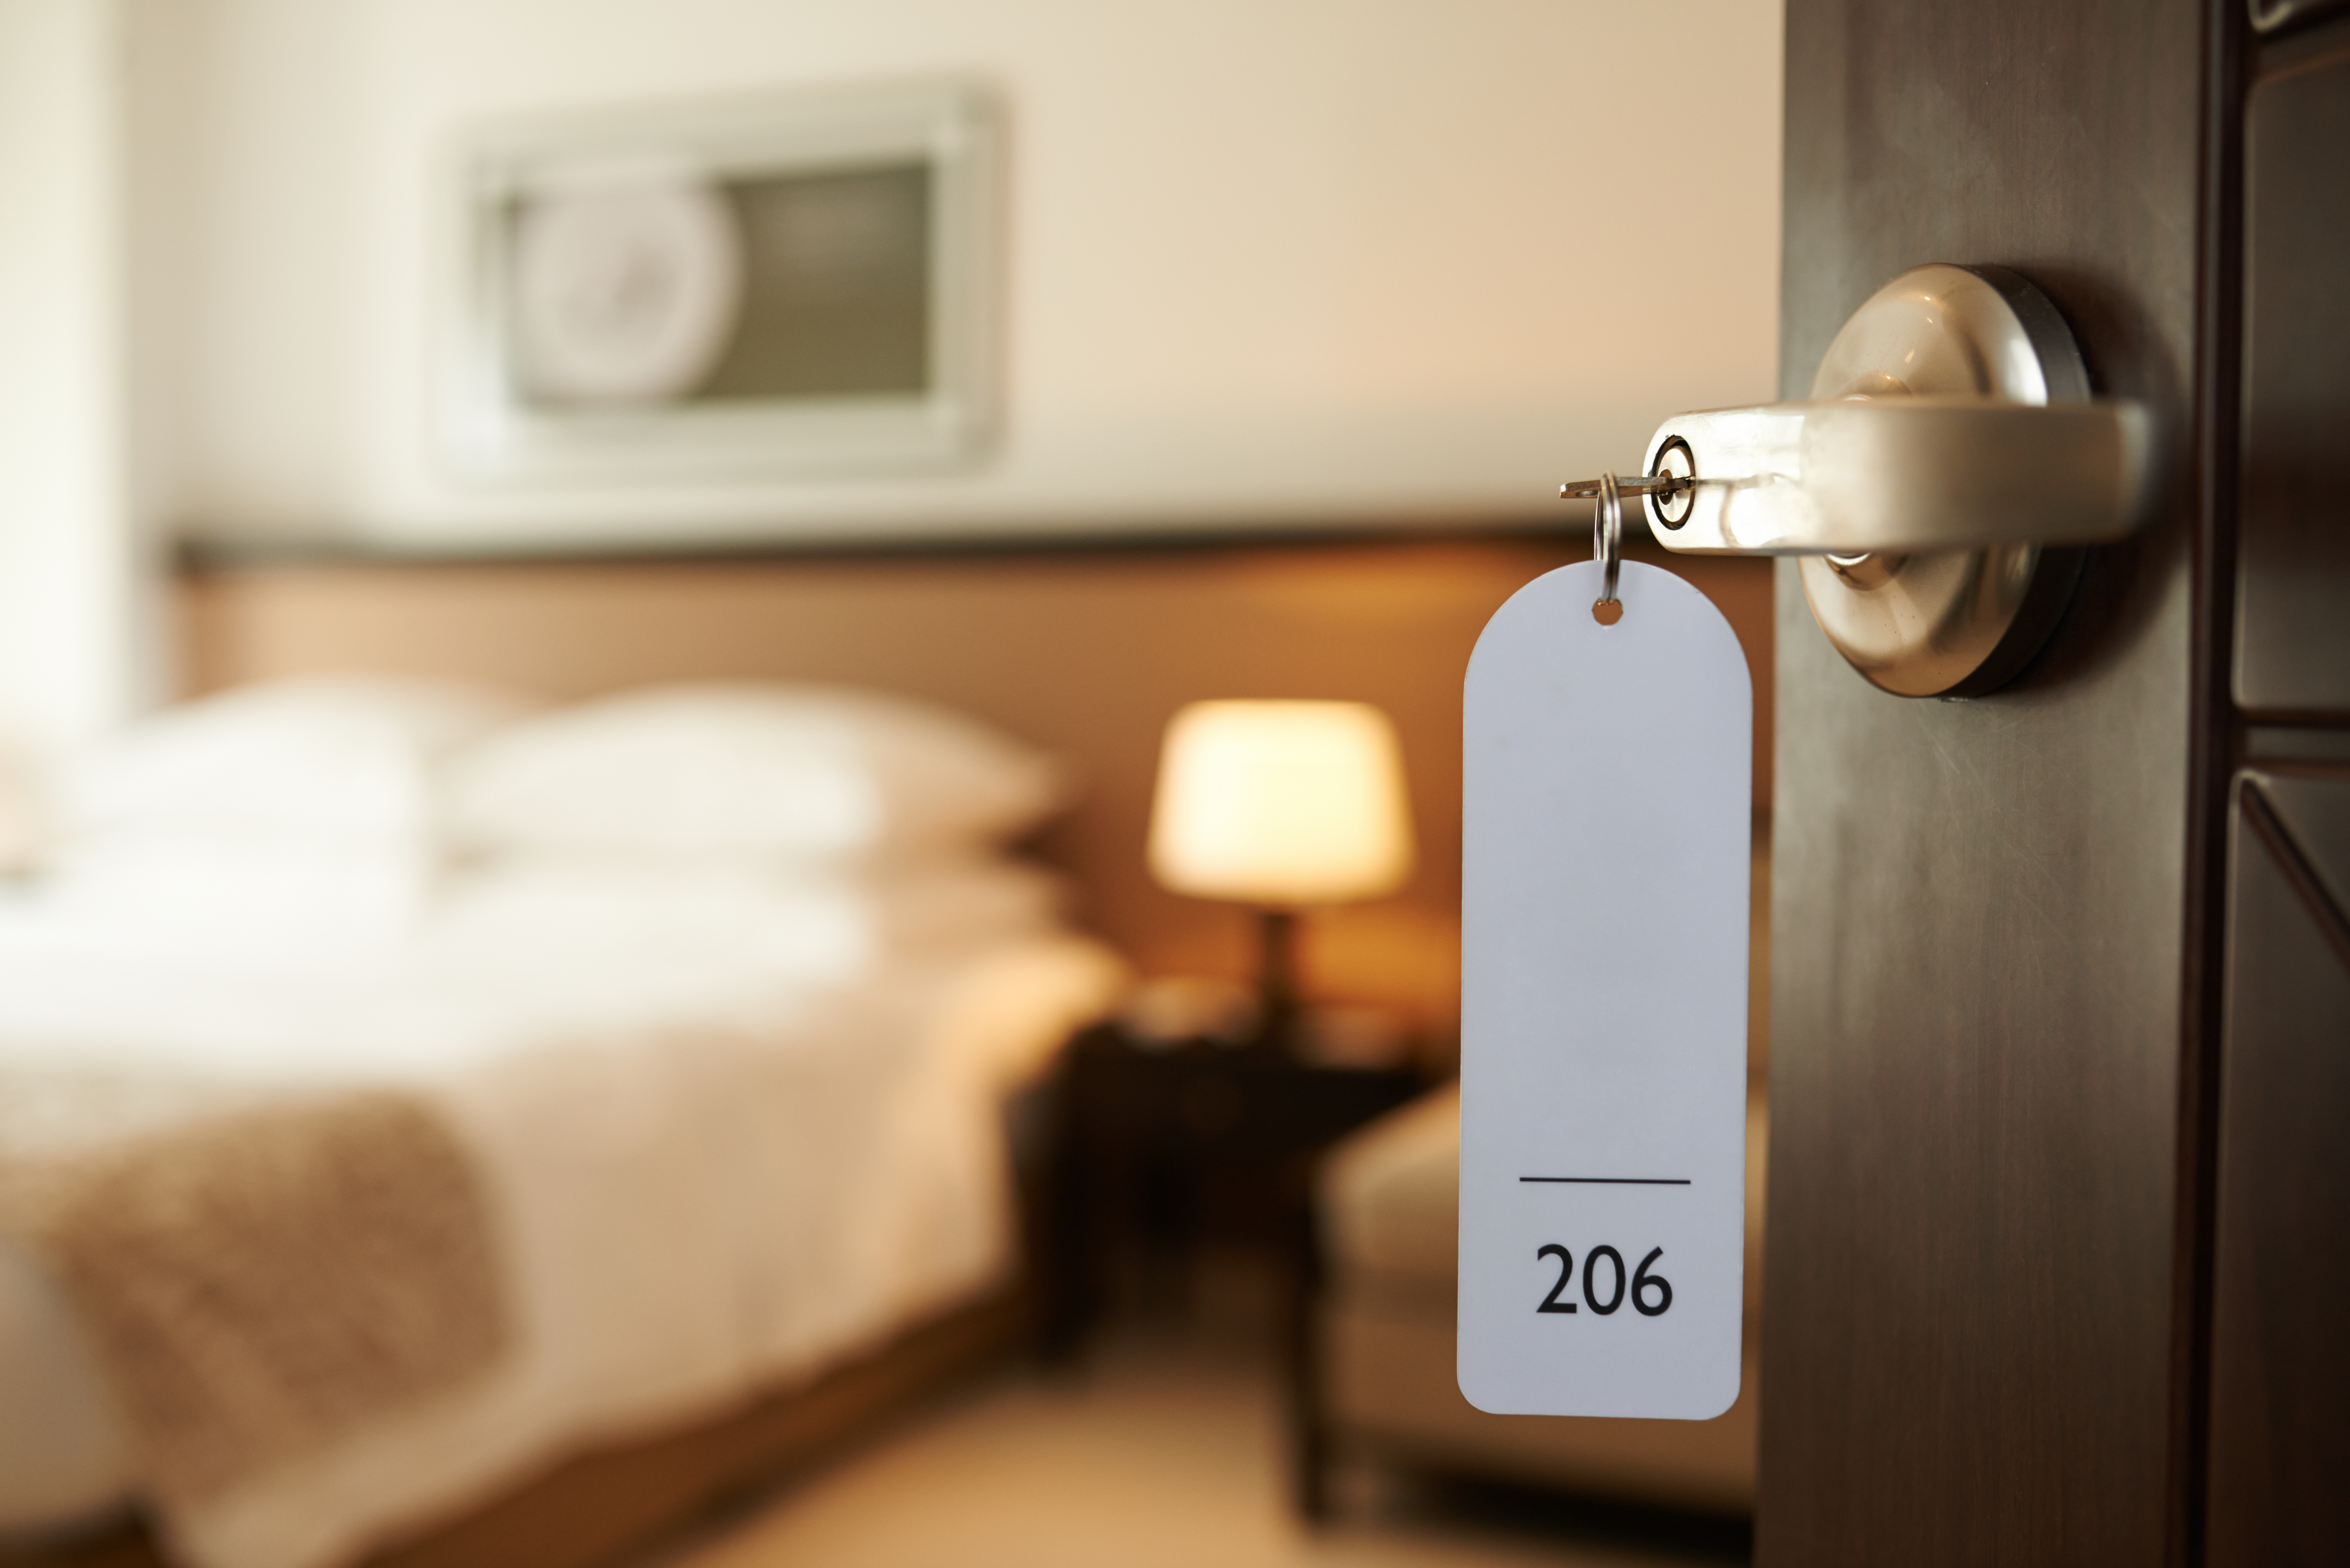 Opened door of hotel room with key in the lock. (Dragon Images/Shutterstock.com)